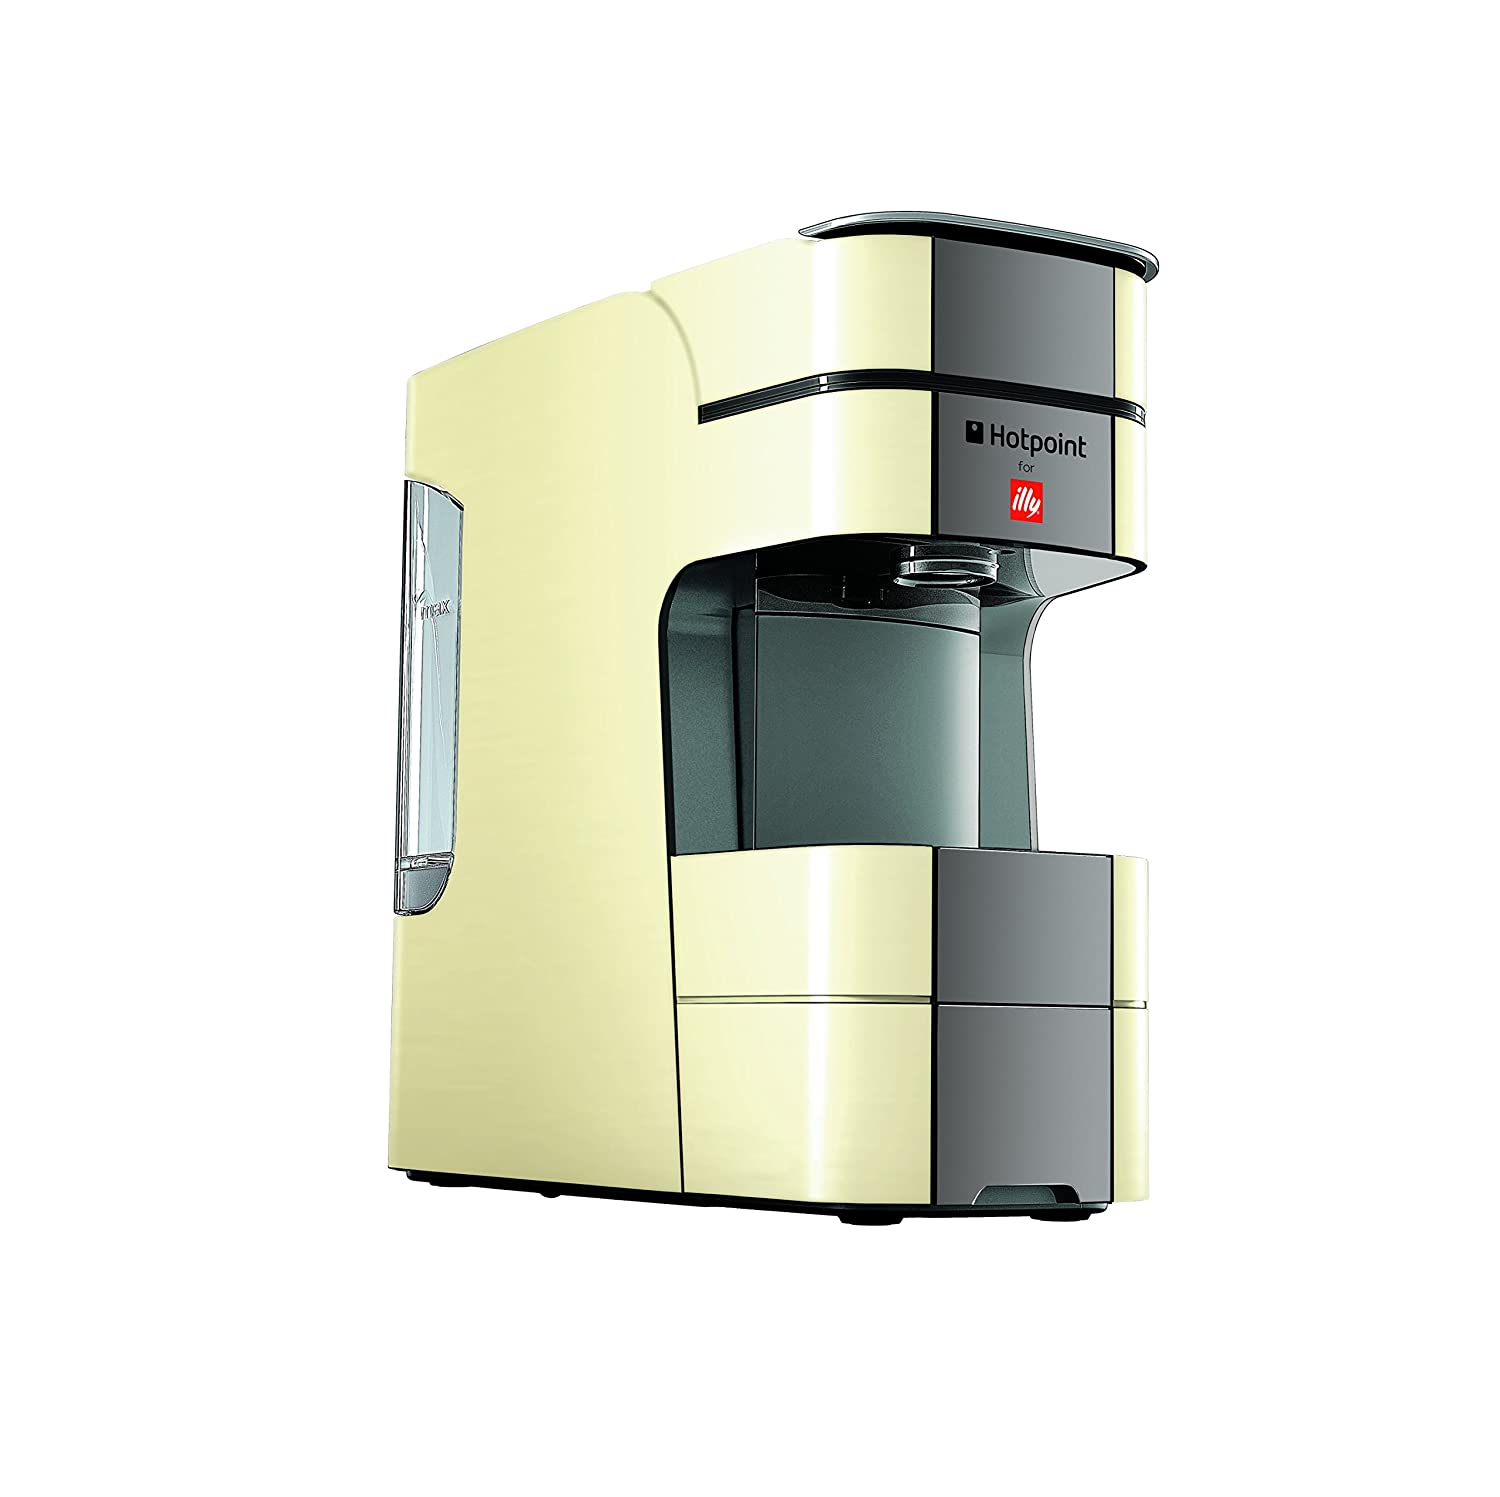 HOTPOINT Espresso Coffee Machine, 1250 W, 19 Bar, Creme CM HPC GC0 UK